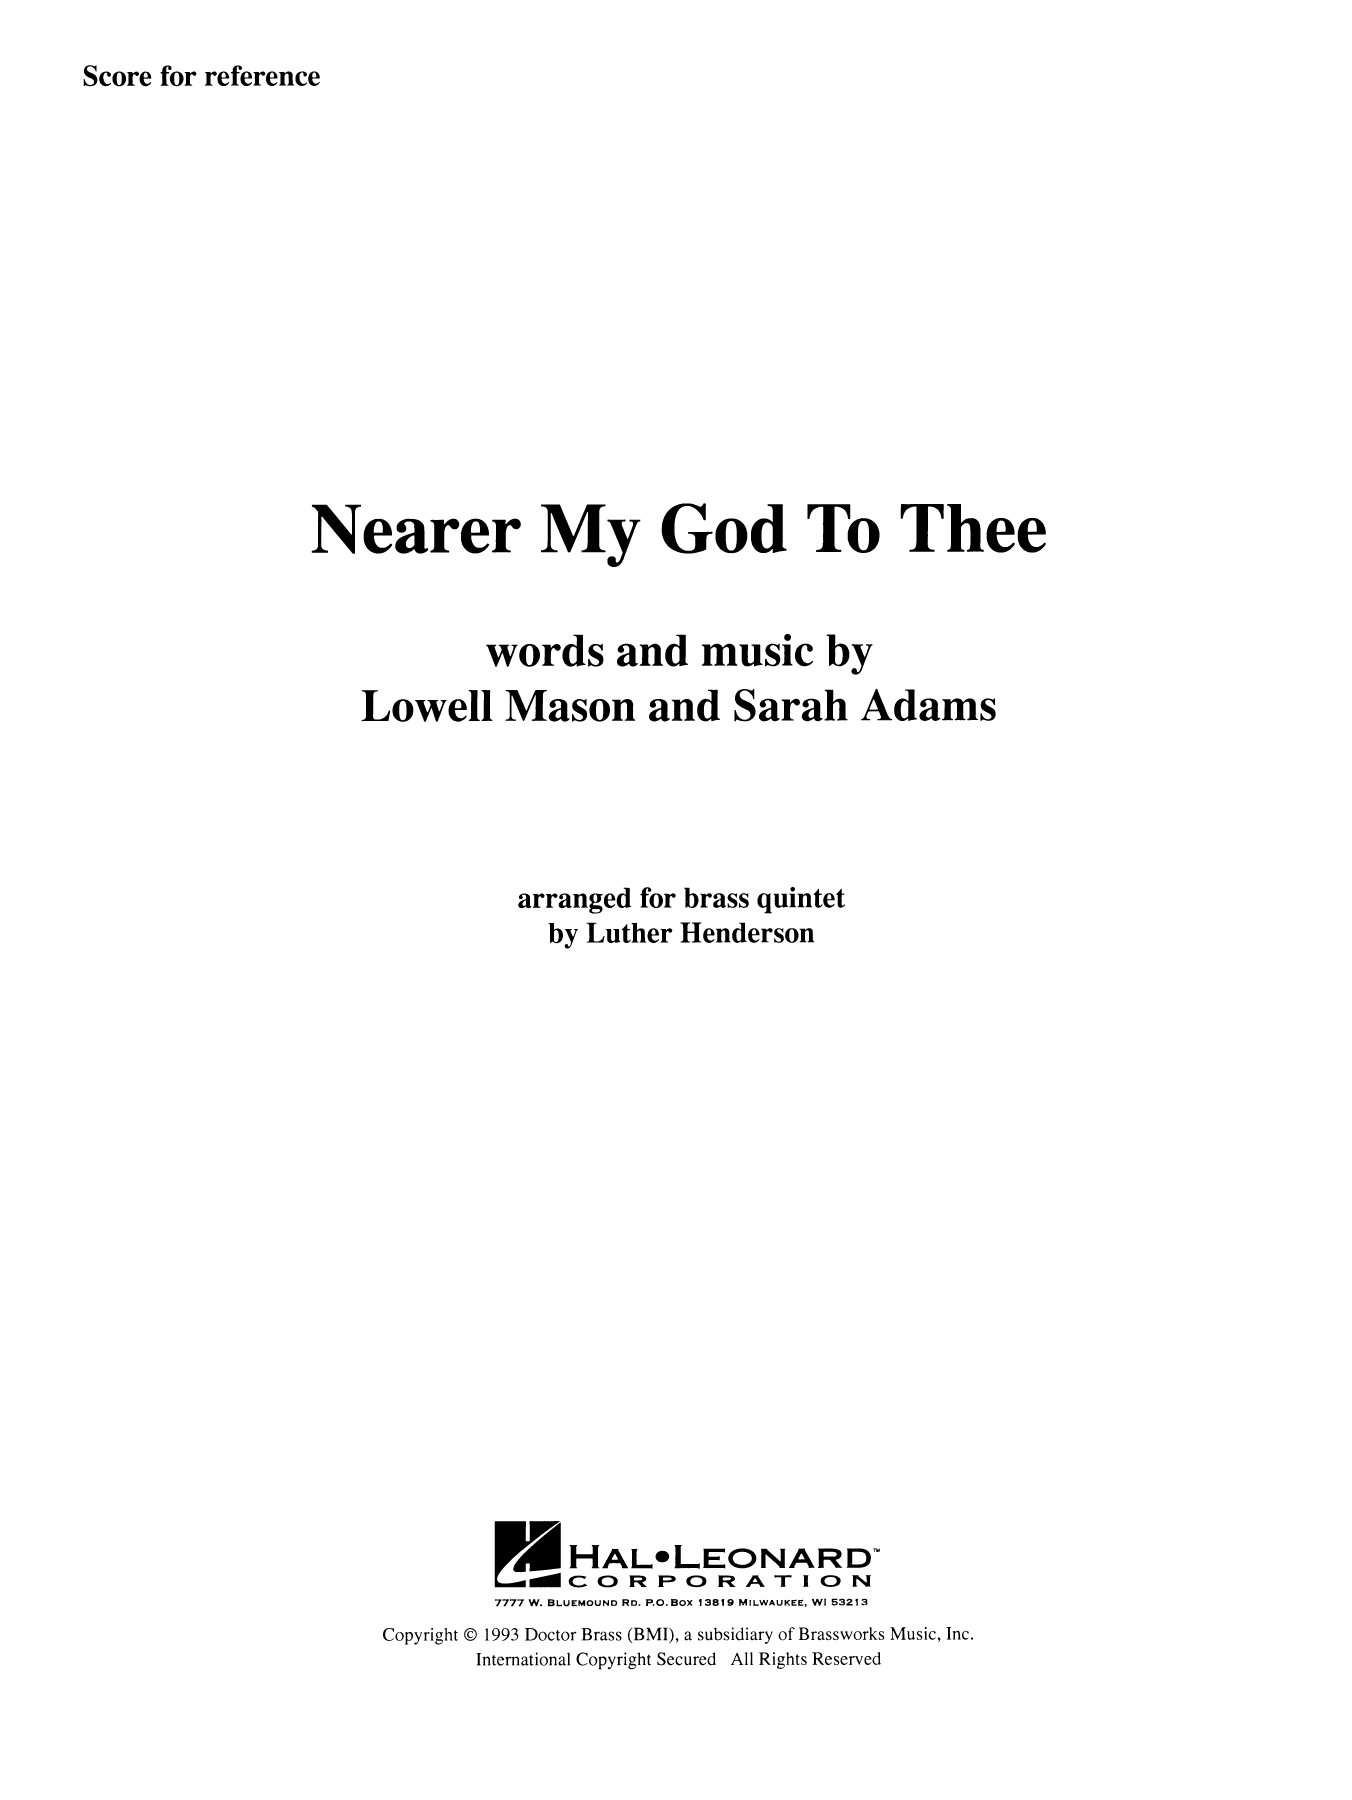 Nearer My God to Thee (COMPLETE) sheet music for brass quintet by Luther Henderson. Score Image Preview.